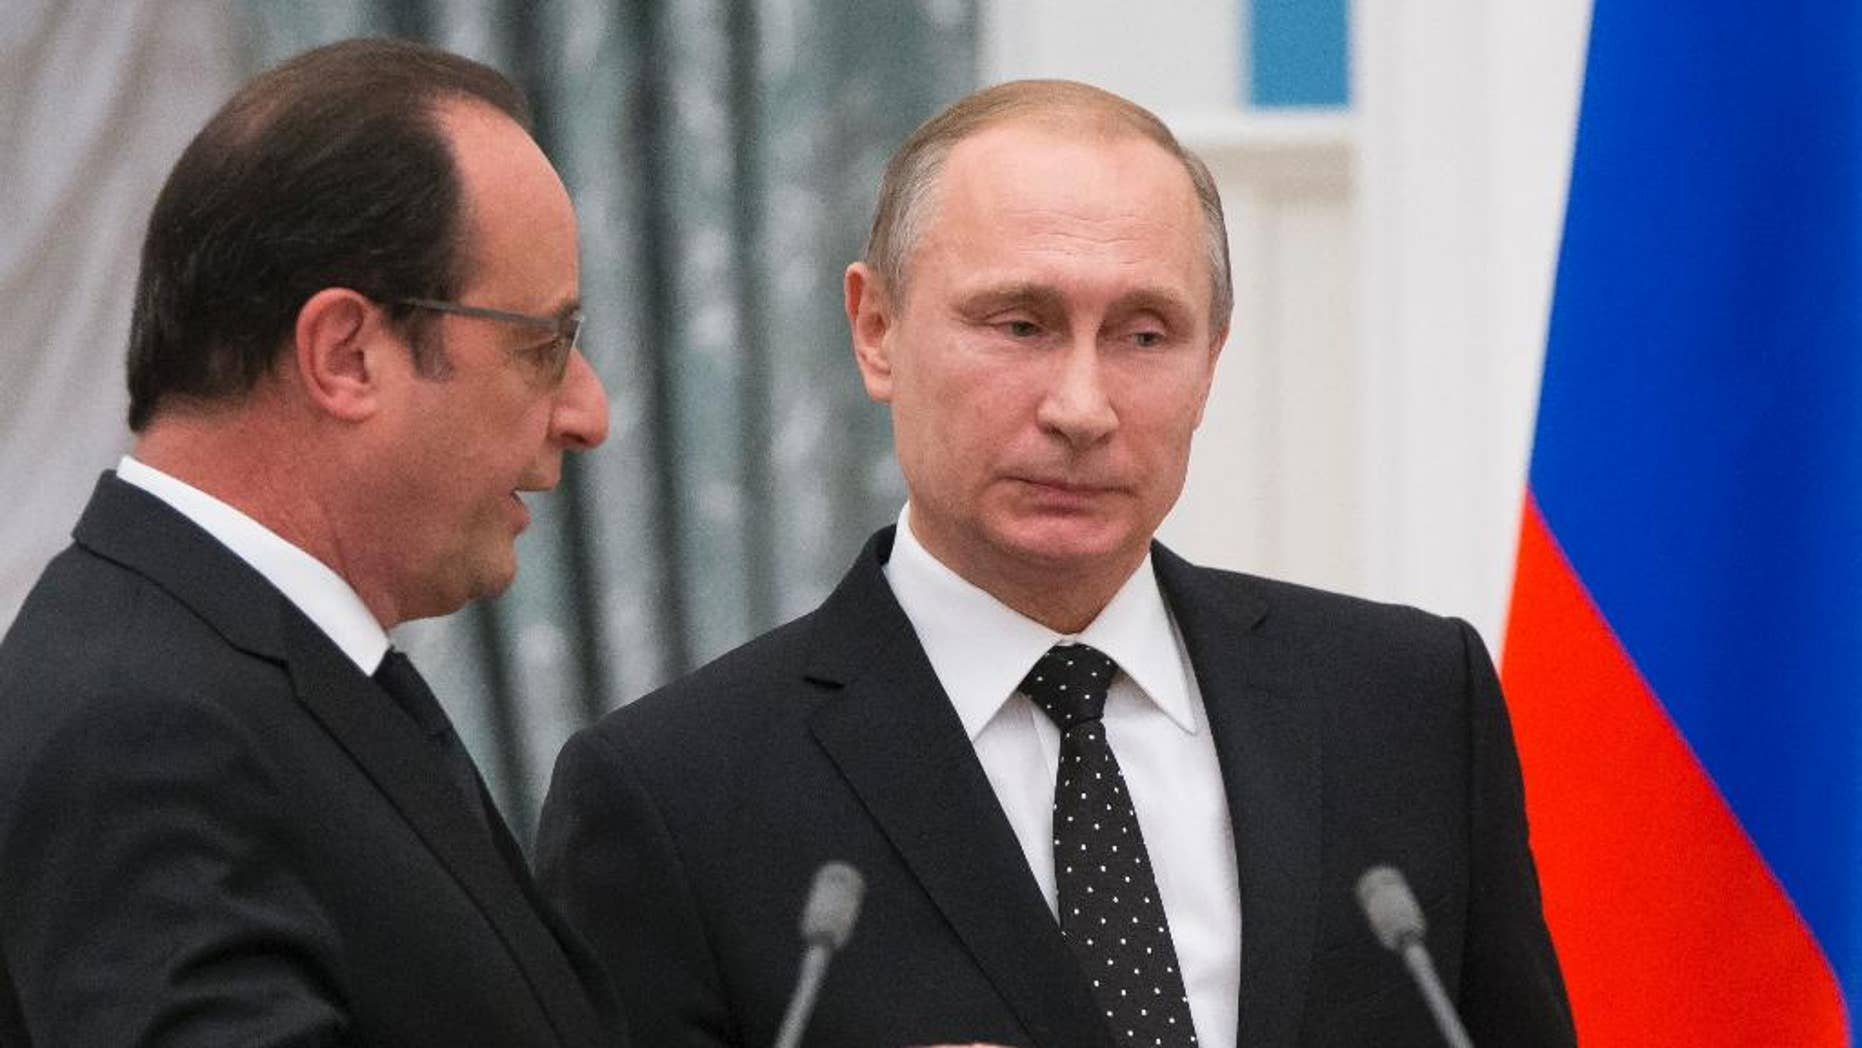 Russian President Vladimir Putin, right, with French President Francois Hollande in November 2015.